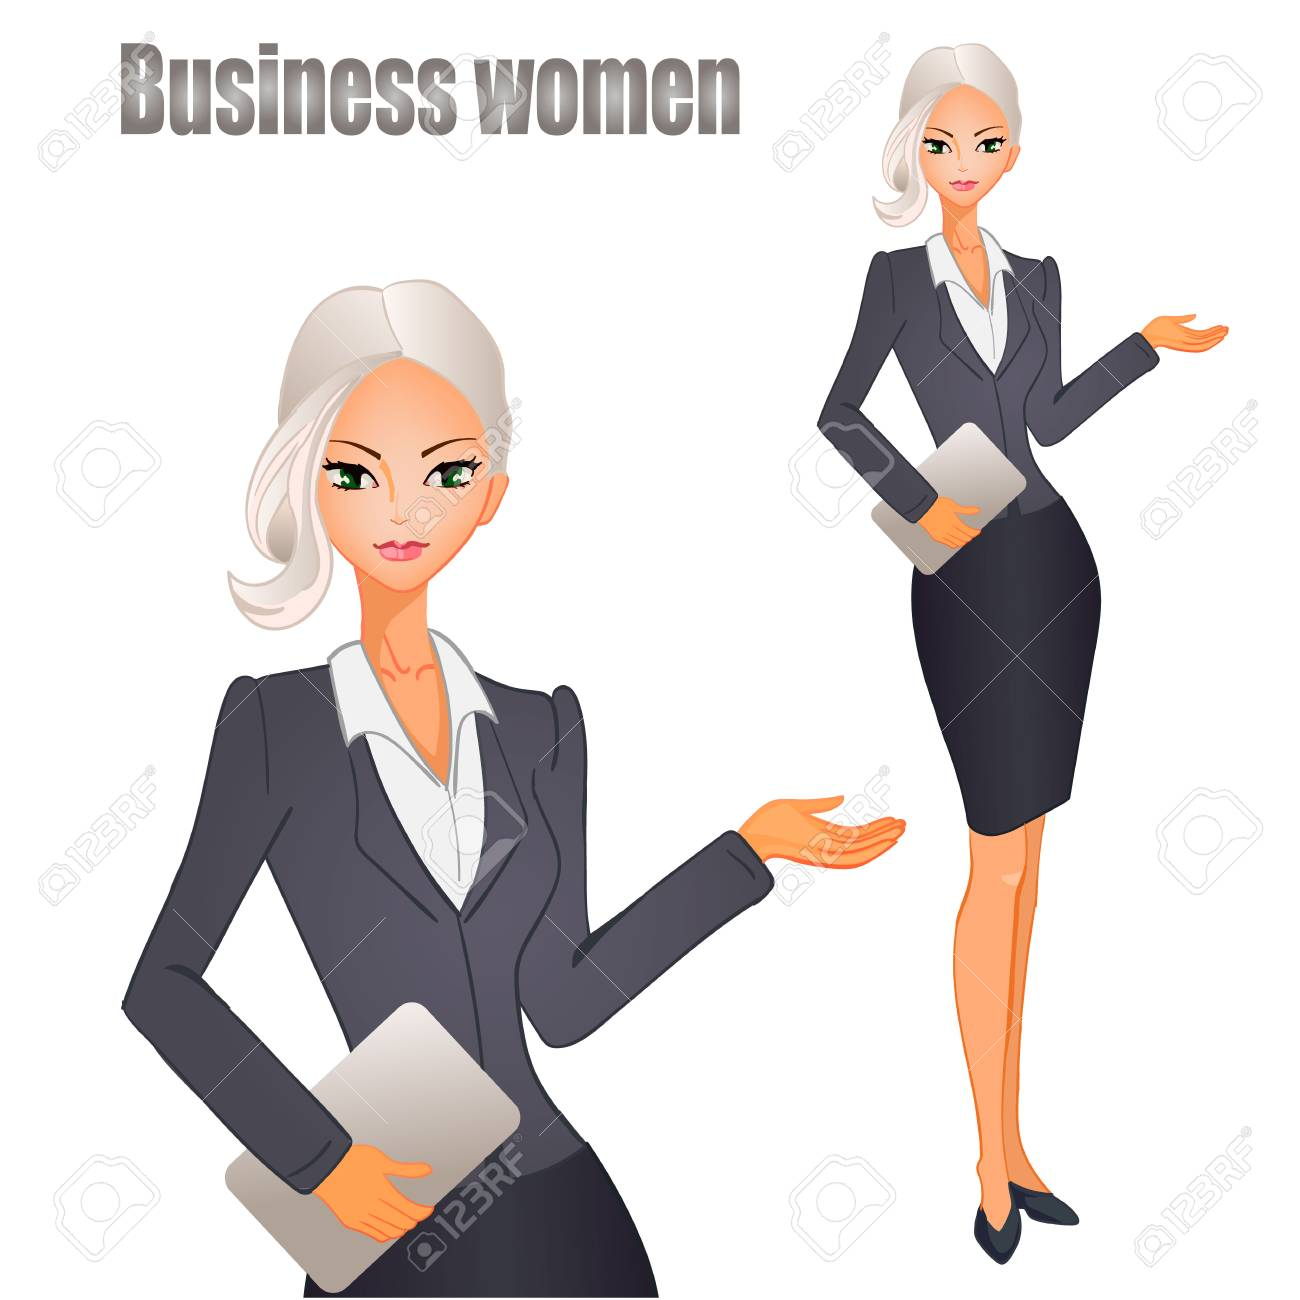 Business women clipart clip art black and white download Business women with blonde hair. VECTOR illustration. » Clipart Station clip art black and white download